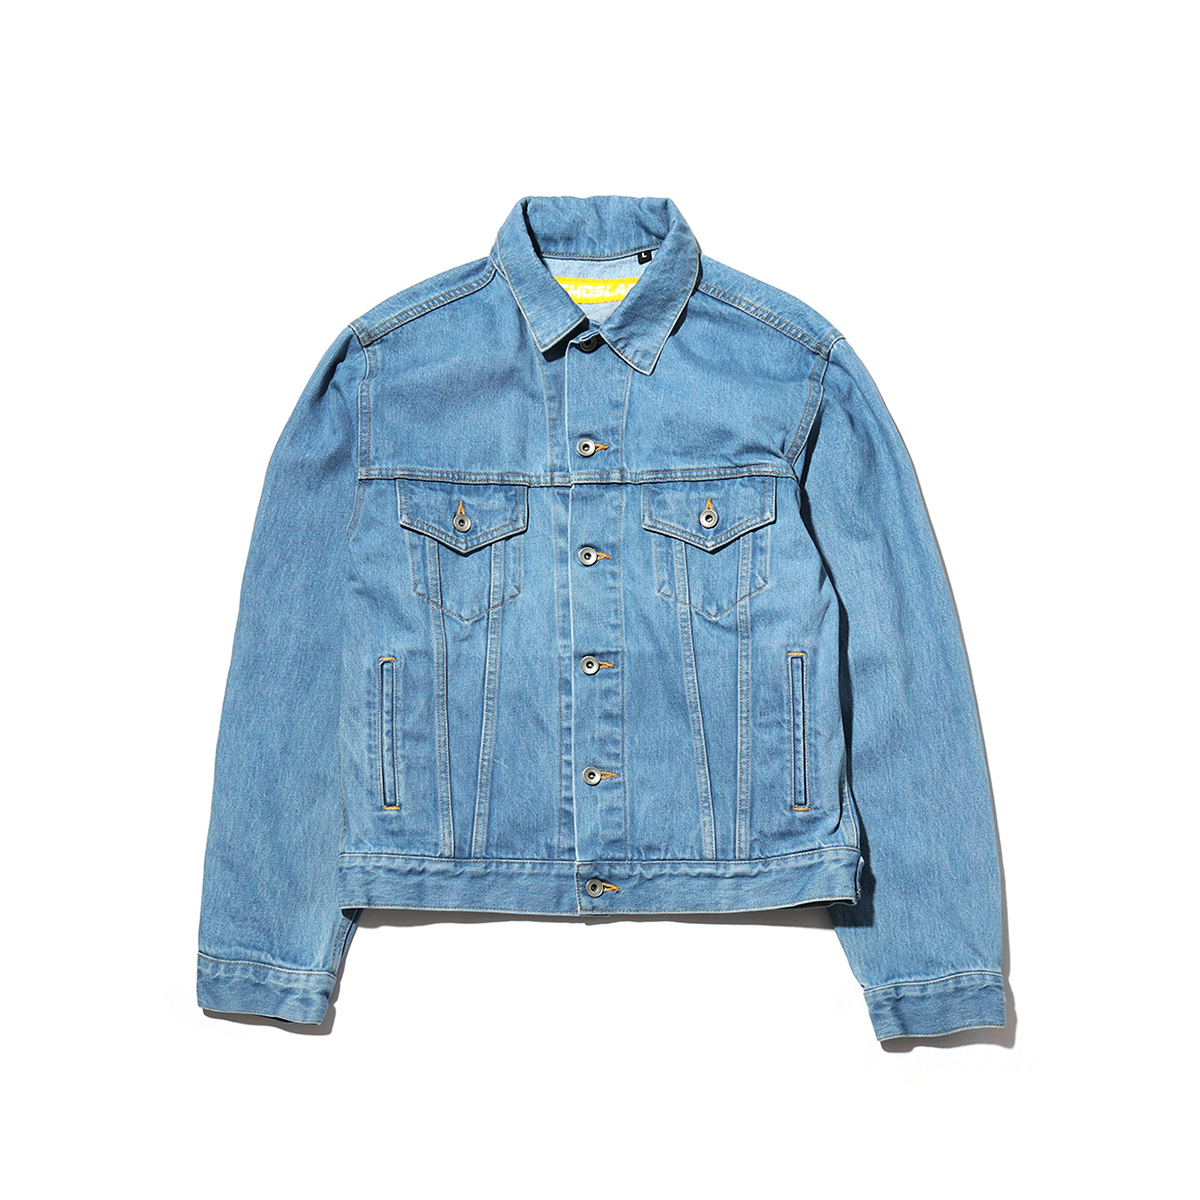 ATMOS LAB LASER LOGO DENIM TRUCKER JACKET